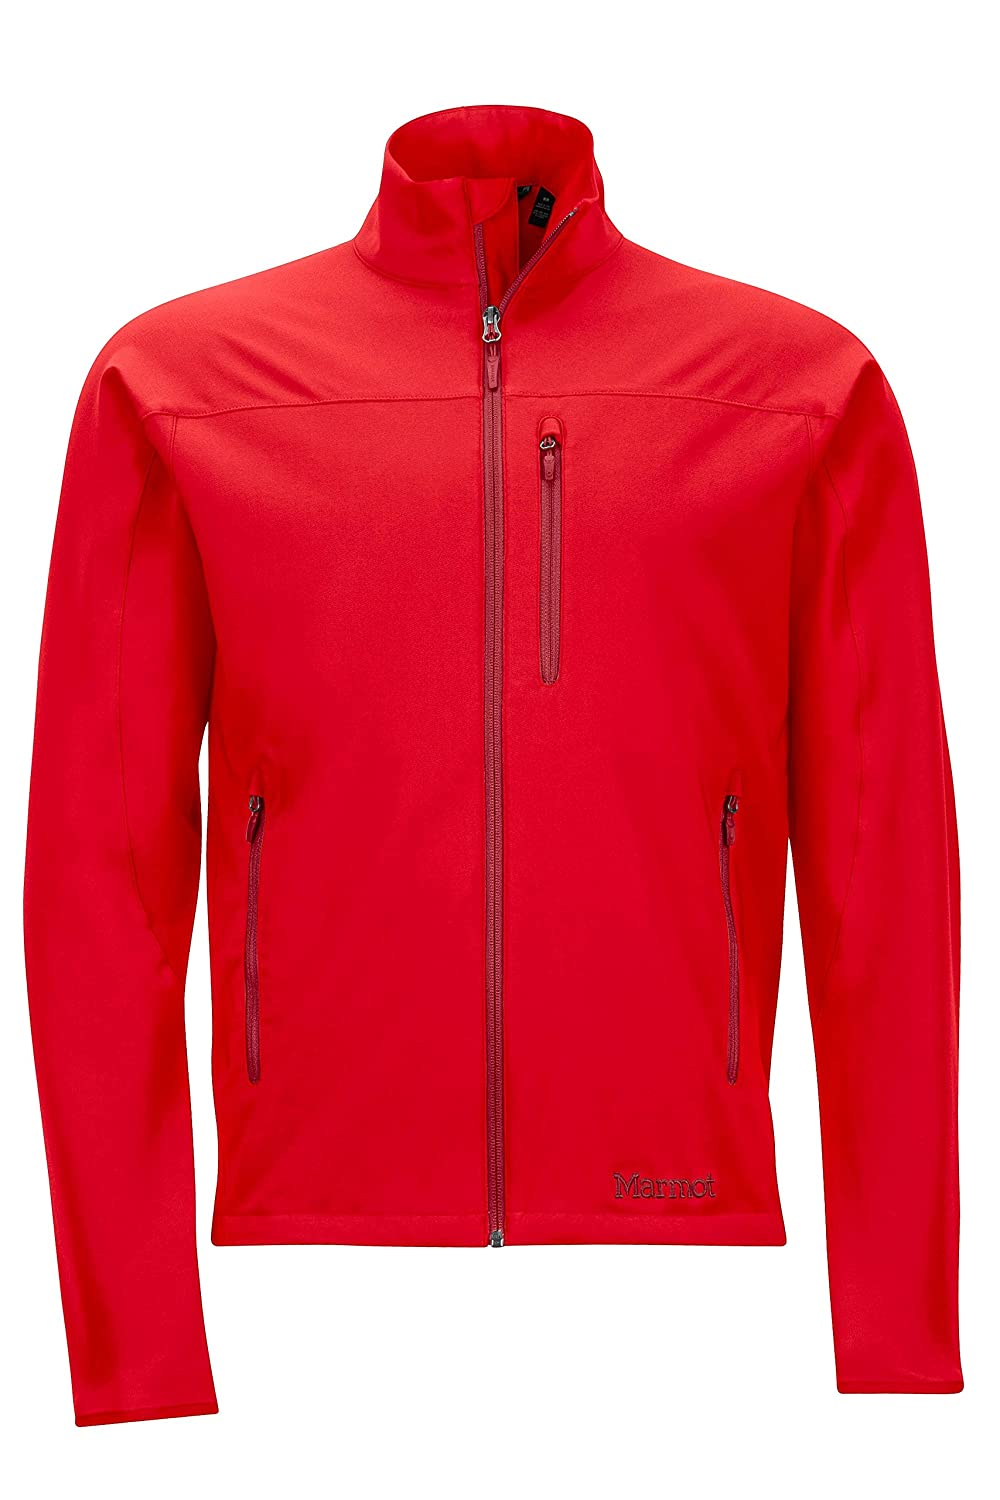 Marmot Tempo Men's Softshell Jacket Marmot Mountain B075LGLKGL-P